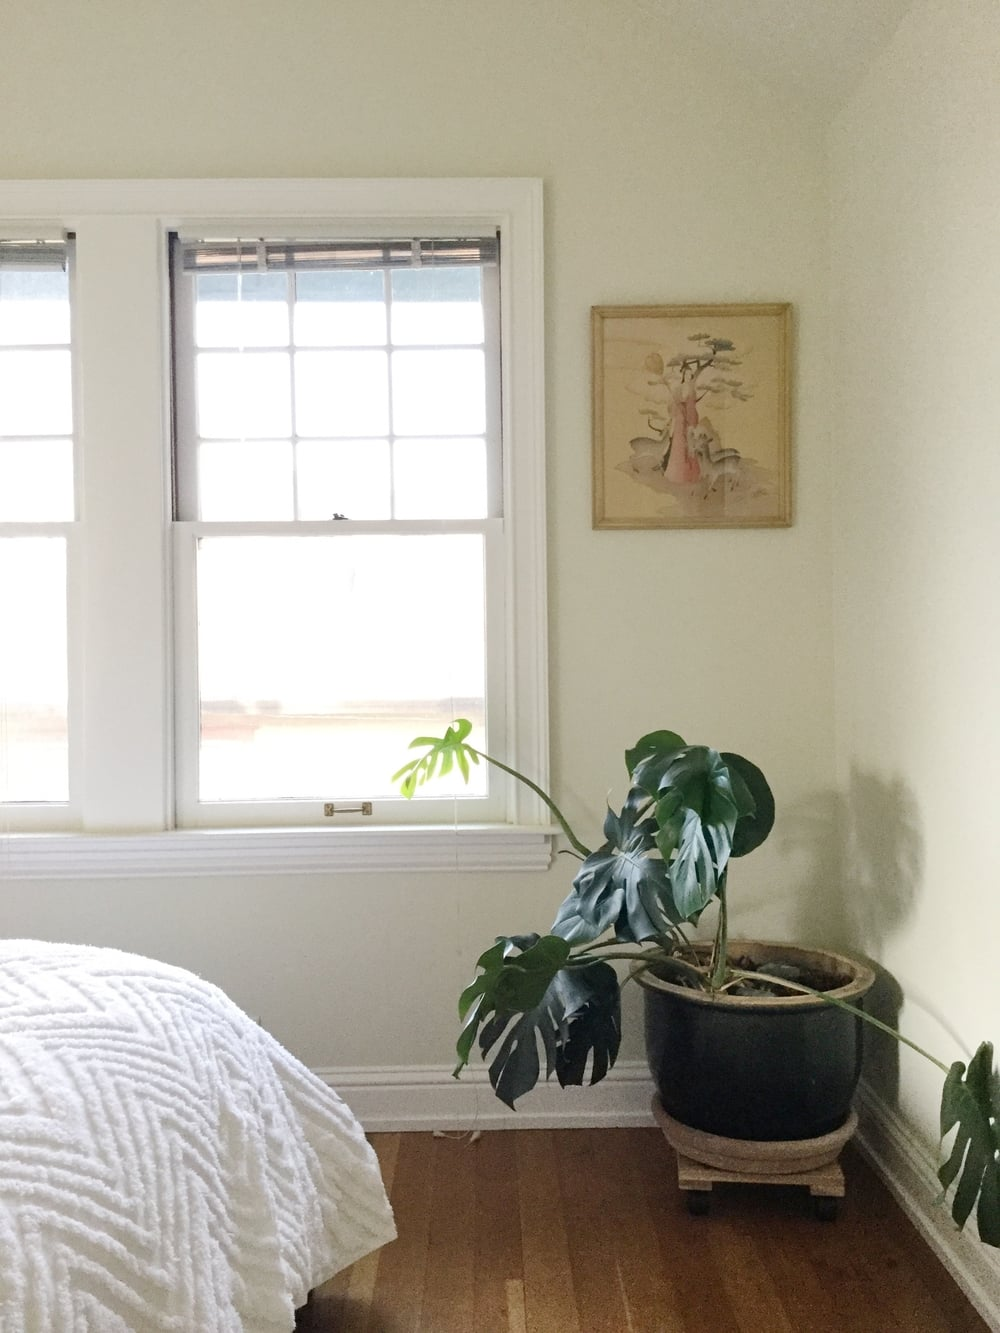 Zen details: a sleepy plant and soft light.